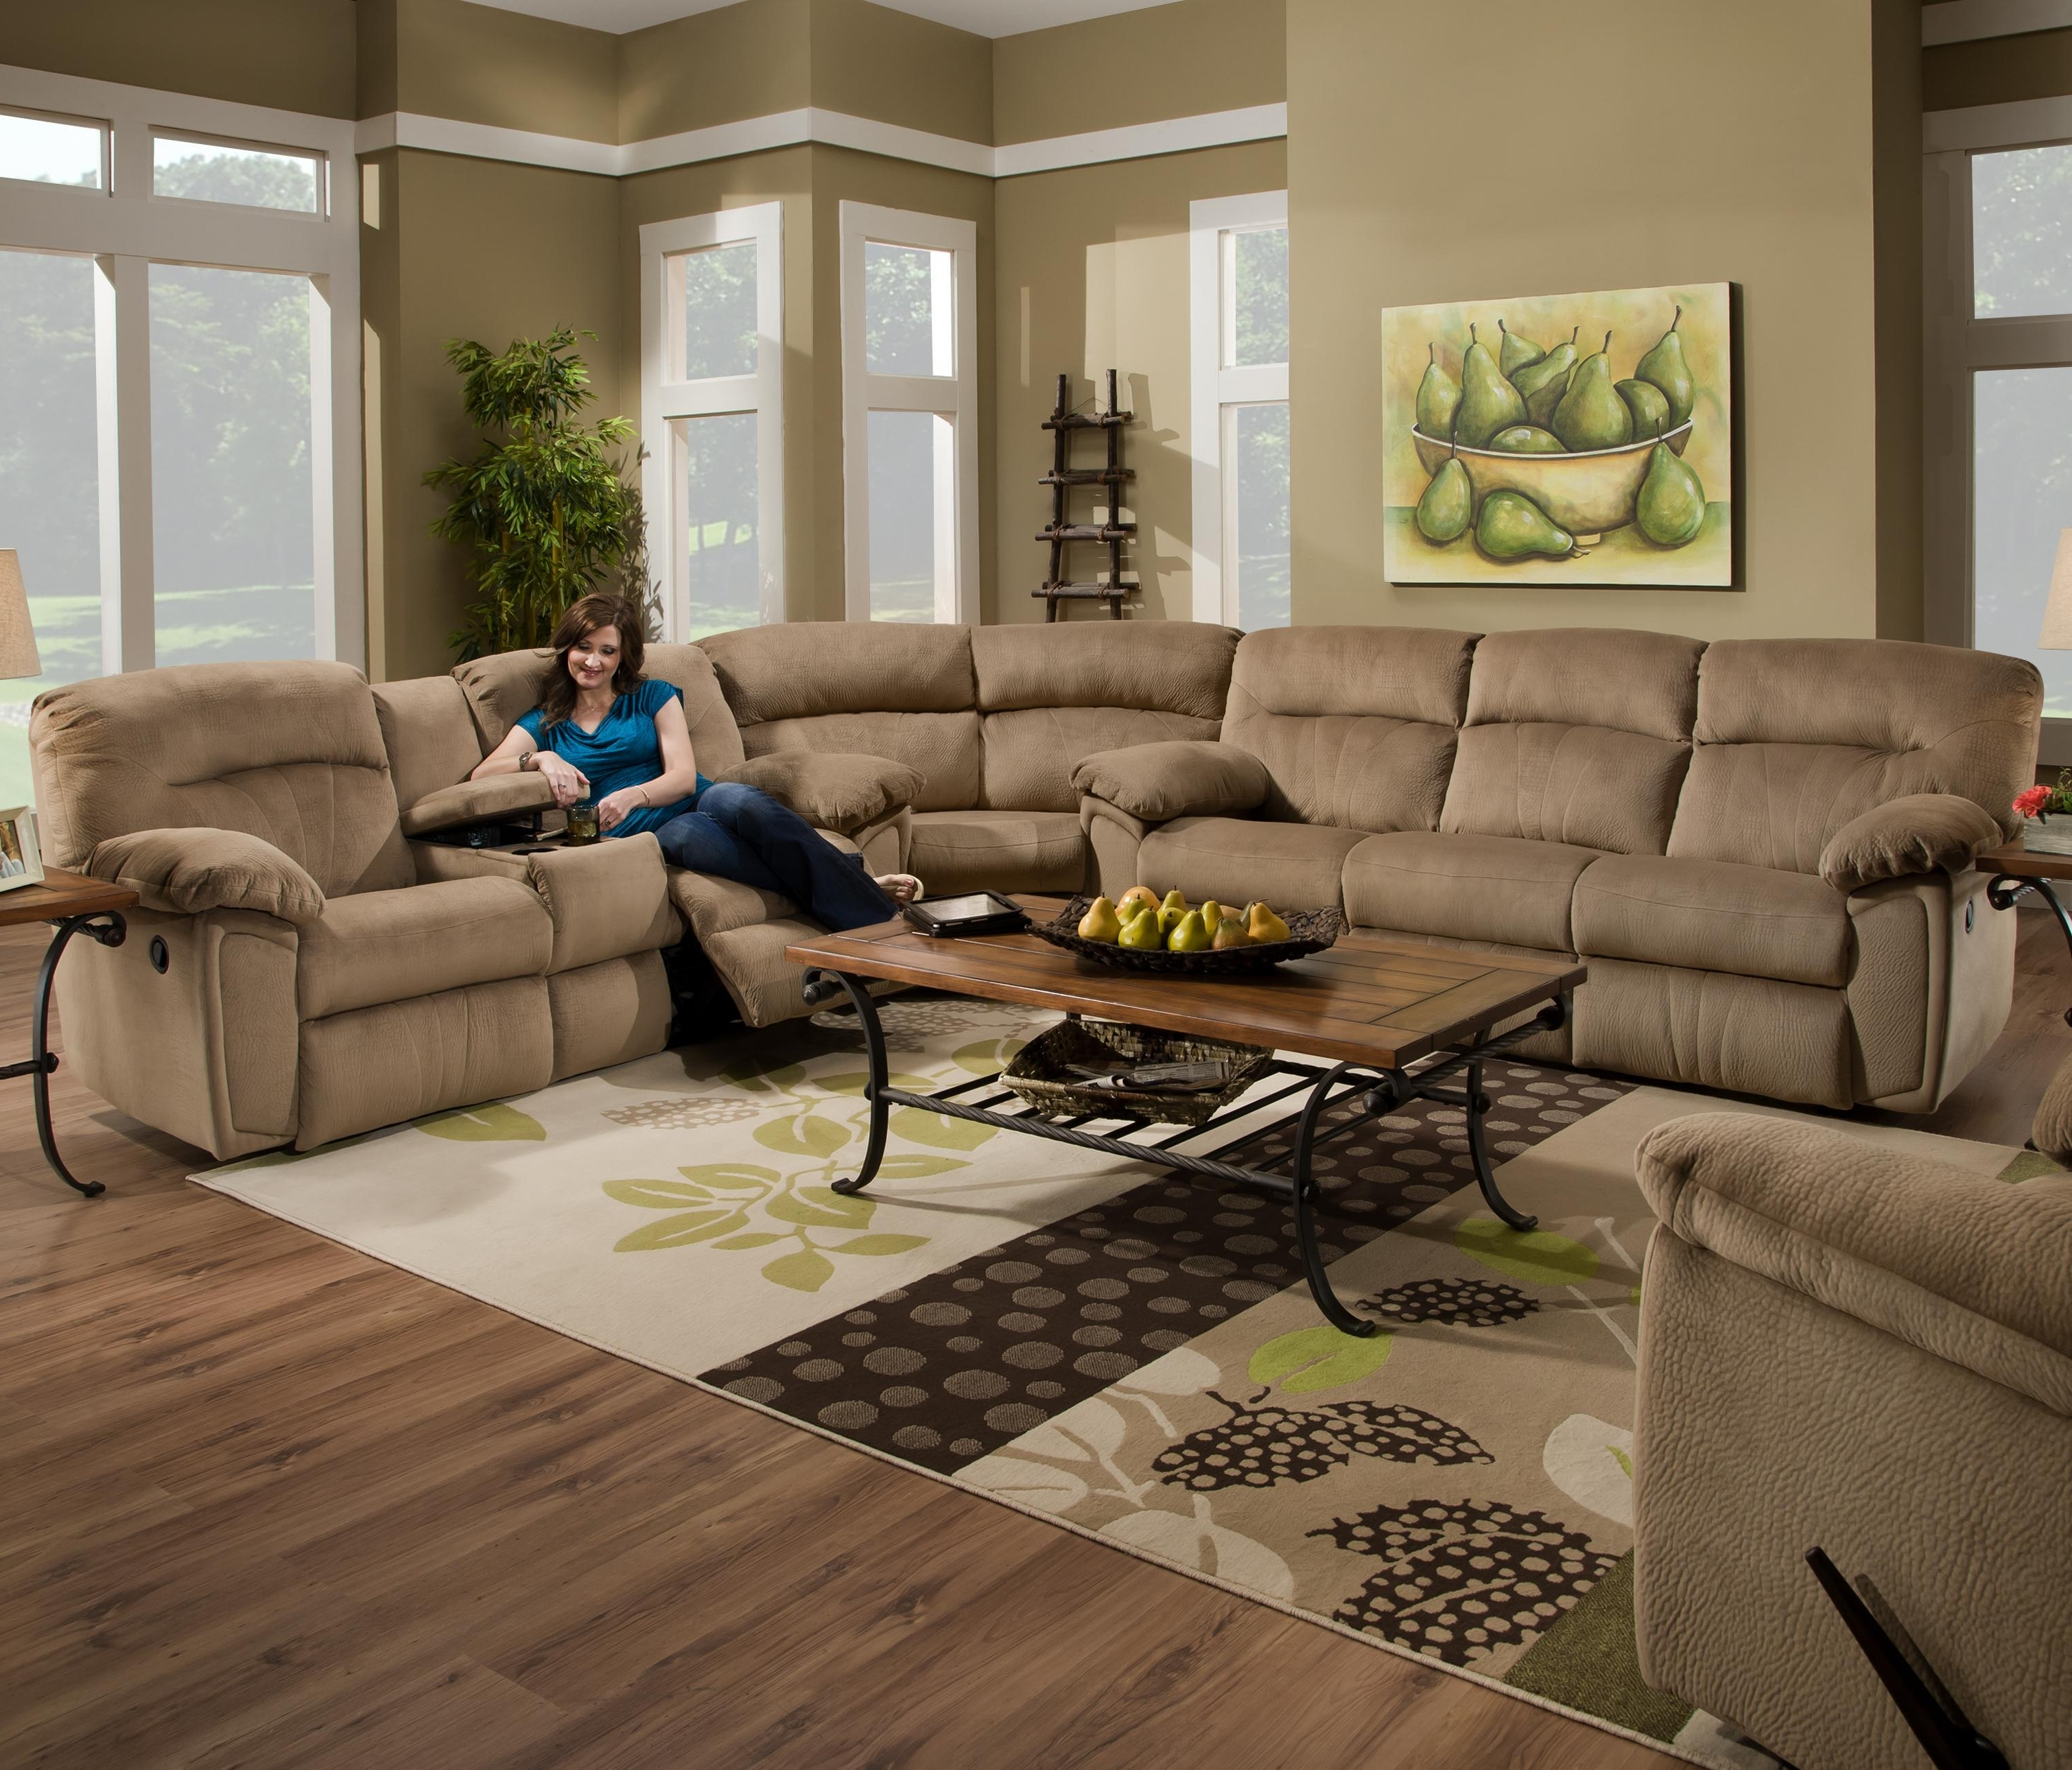 Couch With Cup Holders In Arms Reclining Sectional Sofas For Small Pertaining To Most Popular Reclining Sectional Sofas (View 3 of 15)